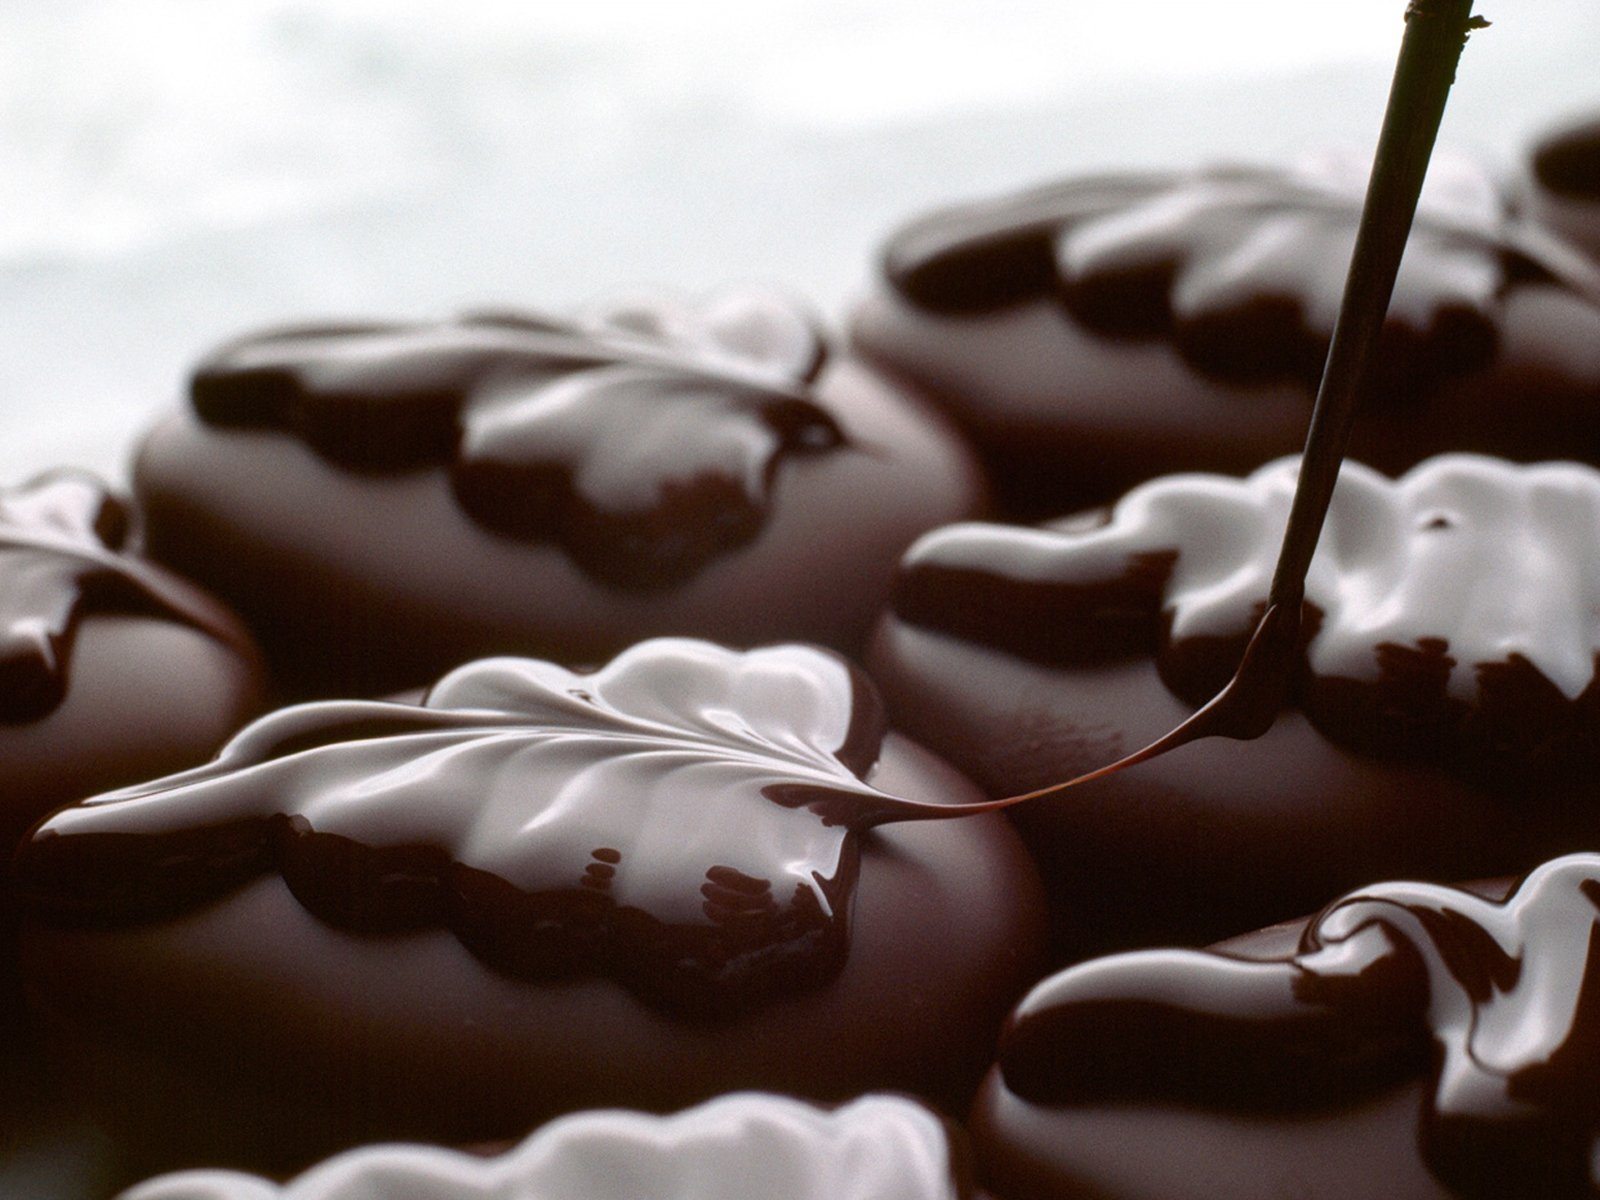 Food - Chocolate  Wallpaper